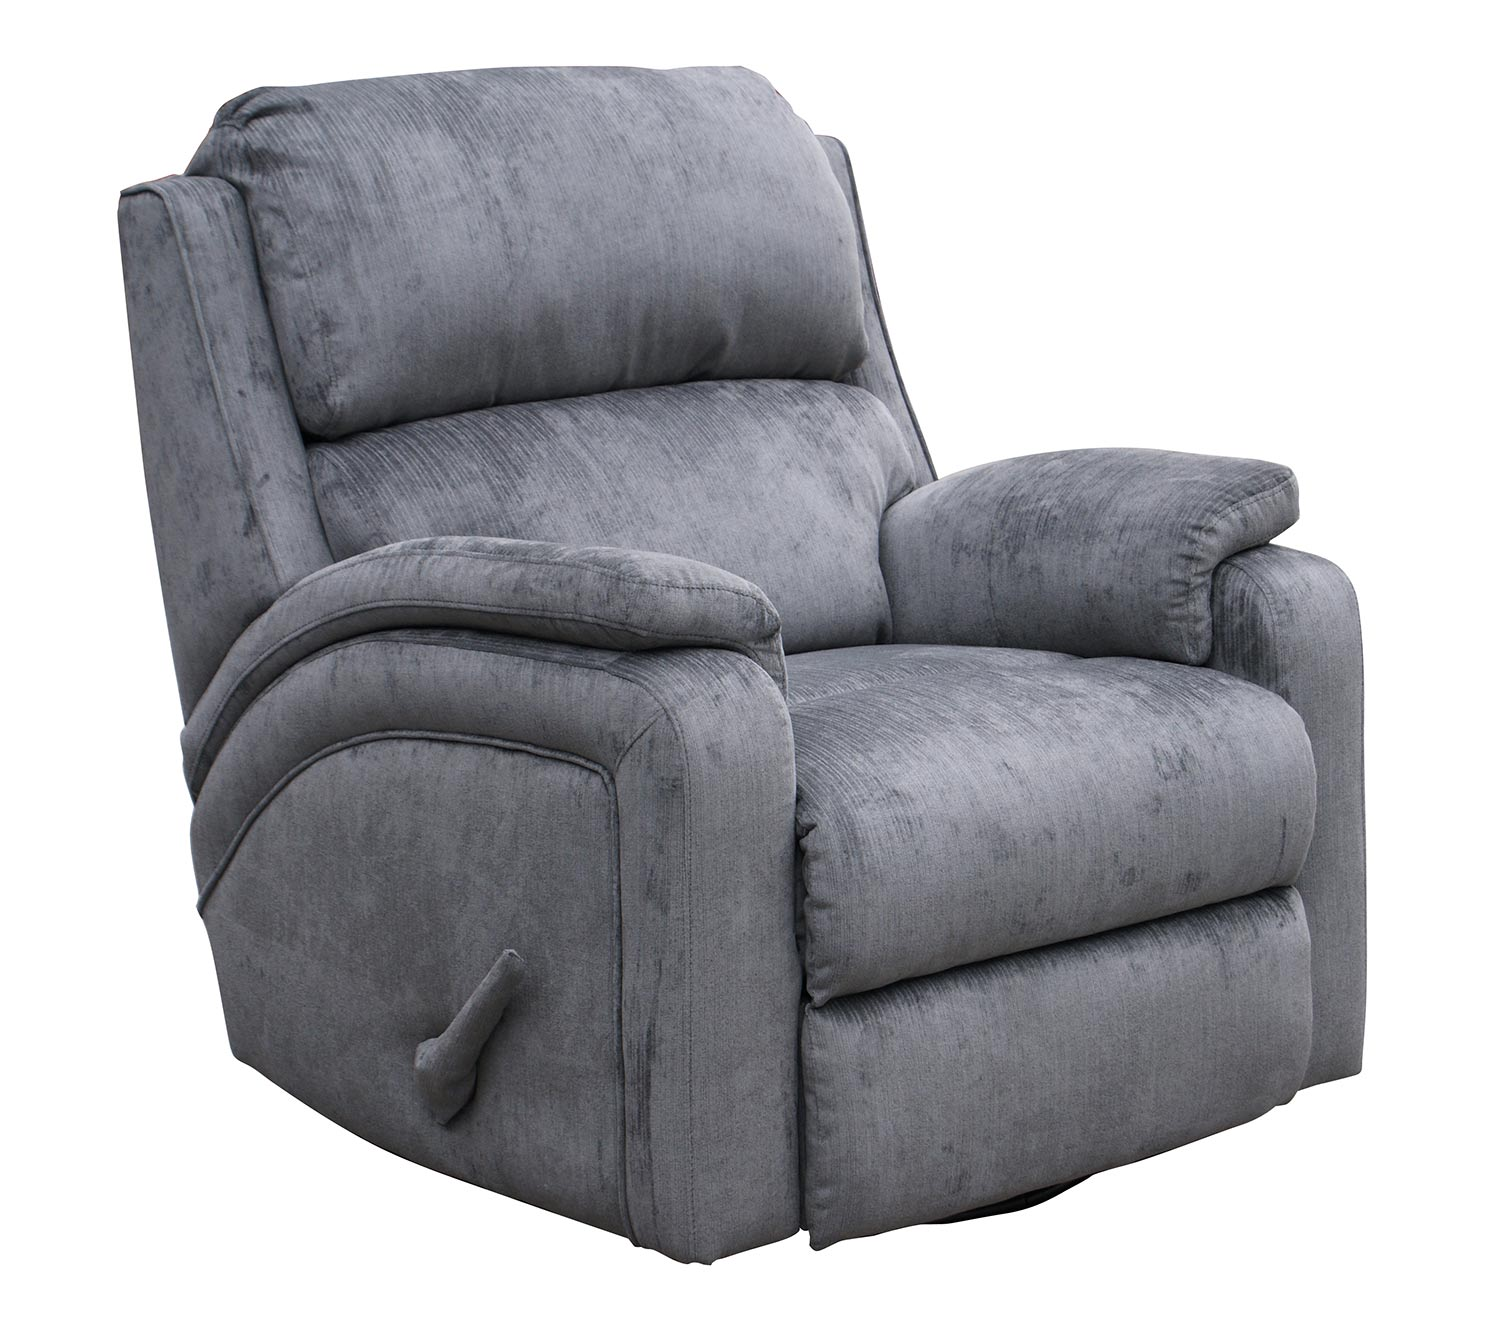 Barcalounger Vantage ll Casual forts Recliner Chair Gray 6